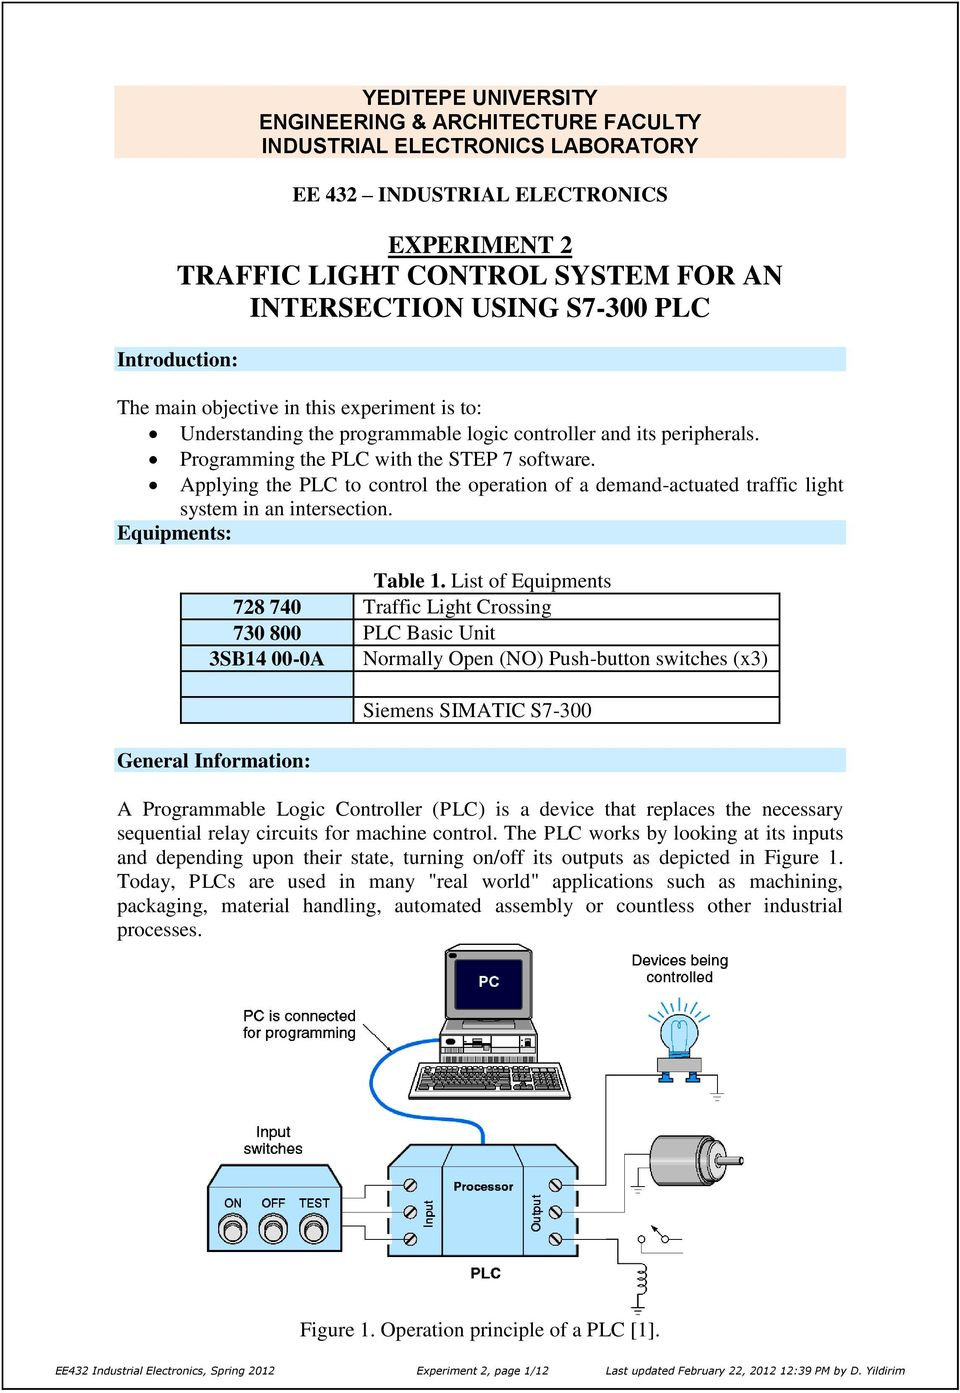 Experiment 2 Traffic Light Control System For An Intersection Using On Off Relay Logic Applying The Plc To Operation Of A Demand Actuated In